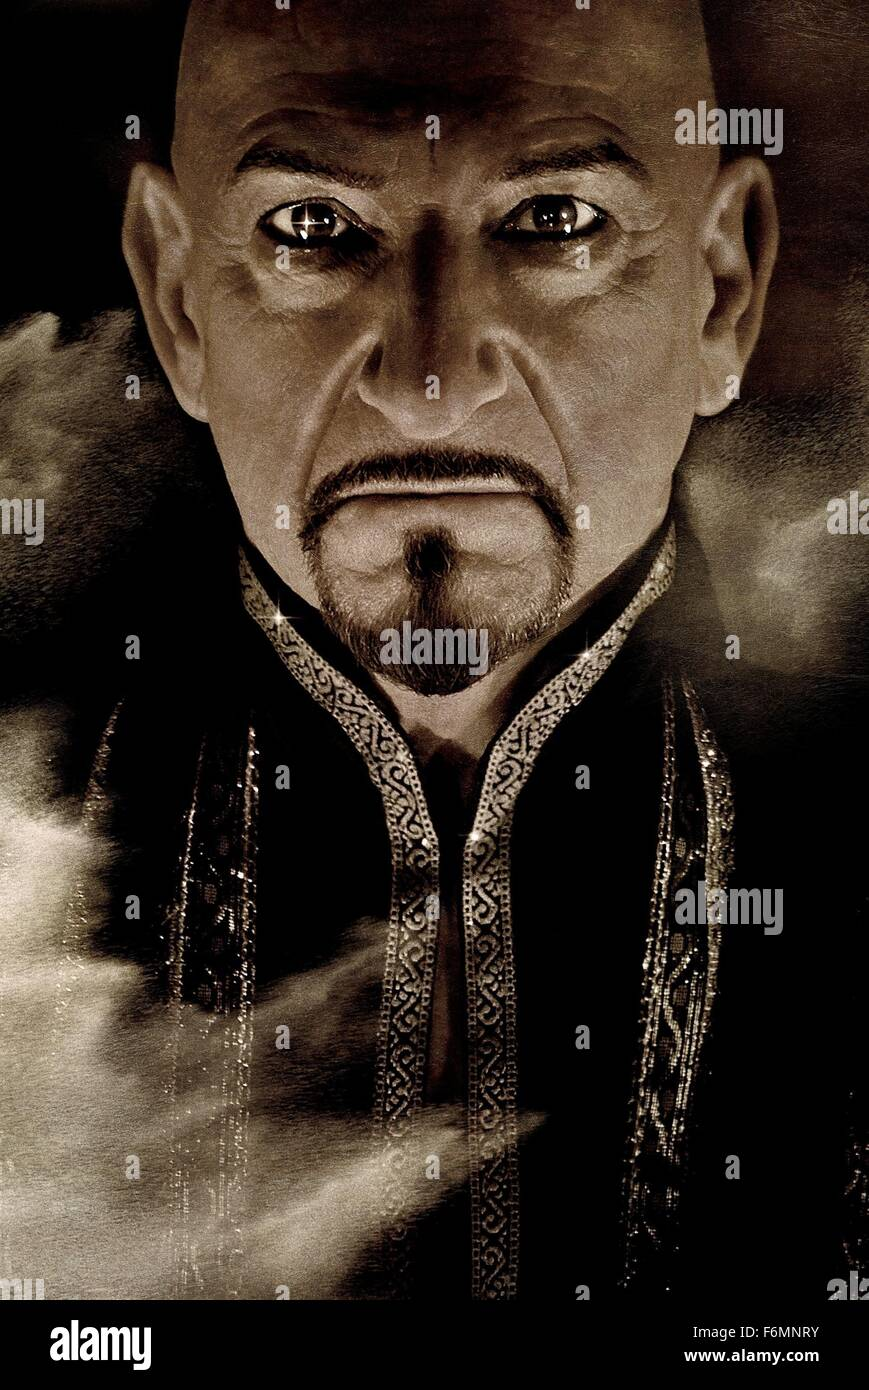 Ben Kingsley As Nizam Film Title Prince Of Persia High Resolution Stock Photography And Images Alamy